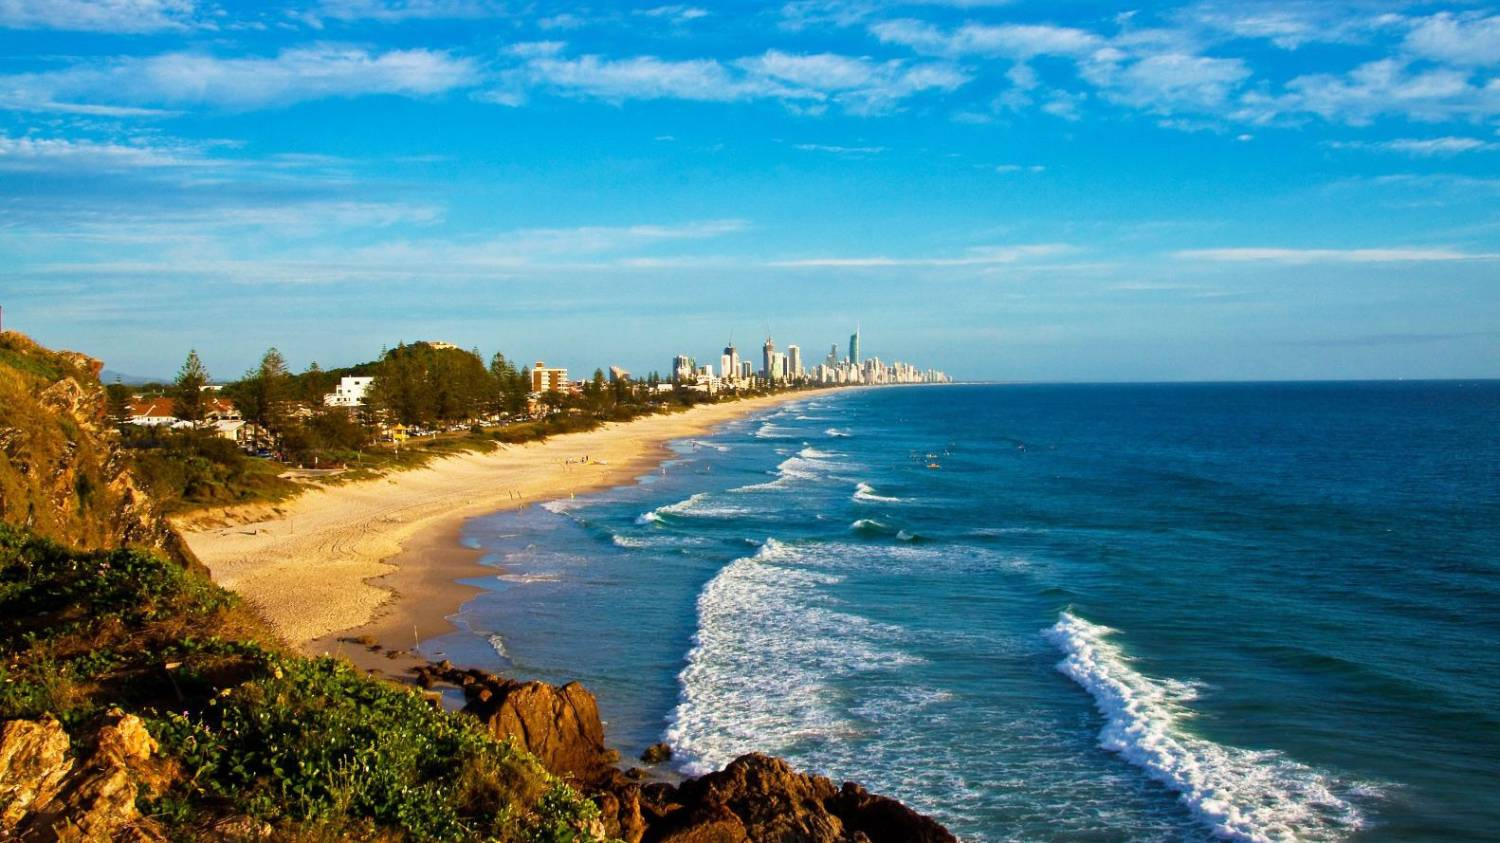 Nobby Beach - Things To Do On The Gold Coast